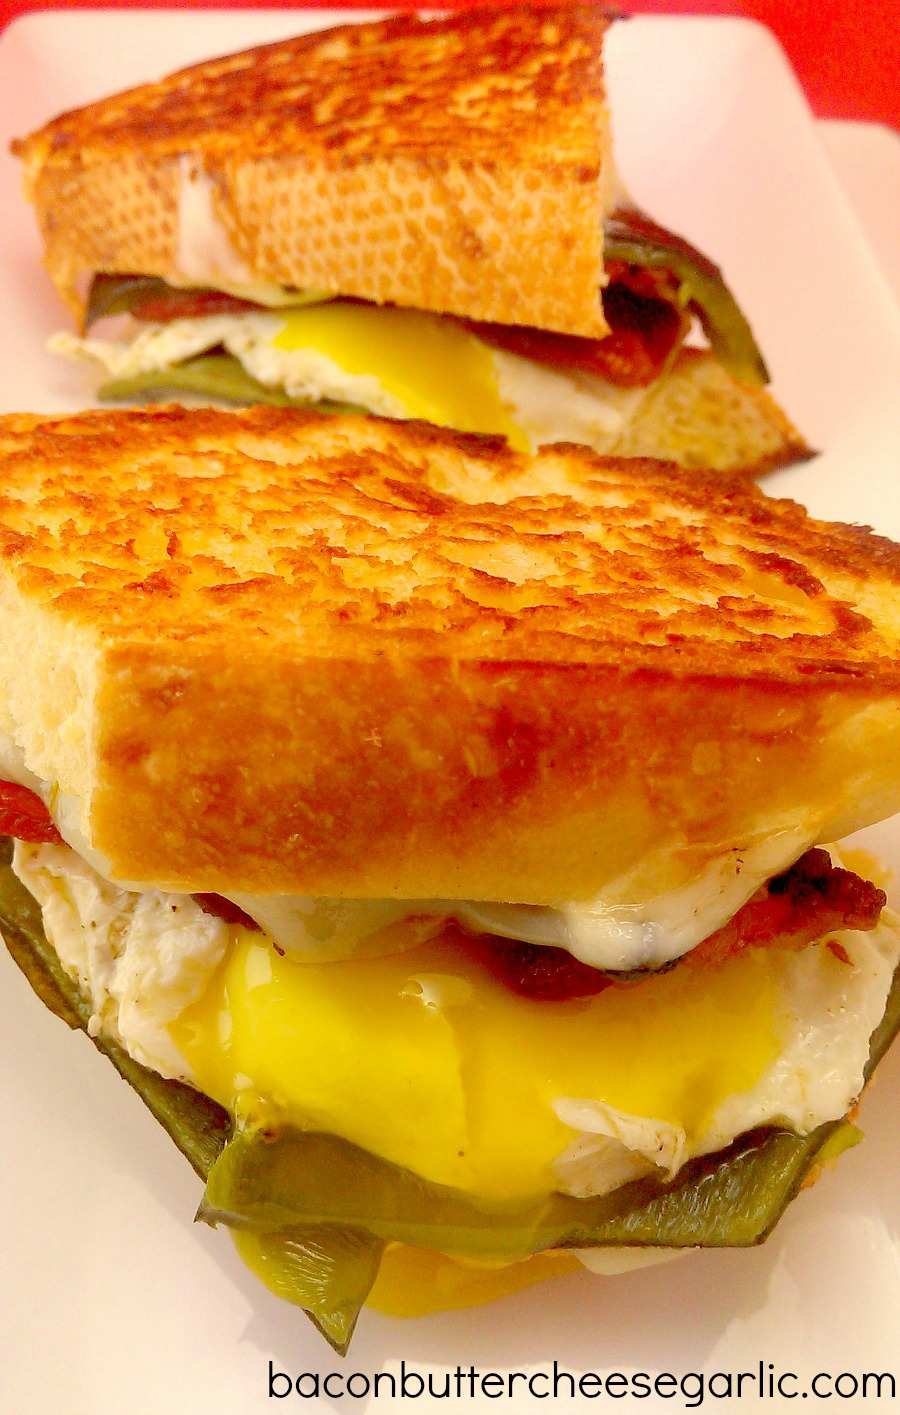 ... of the day roasted poblanos pepper jack cheese bacon and a fried egg